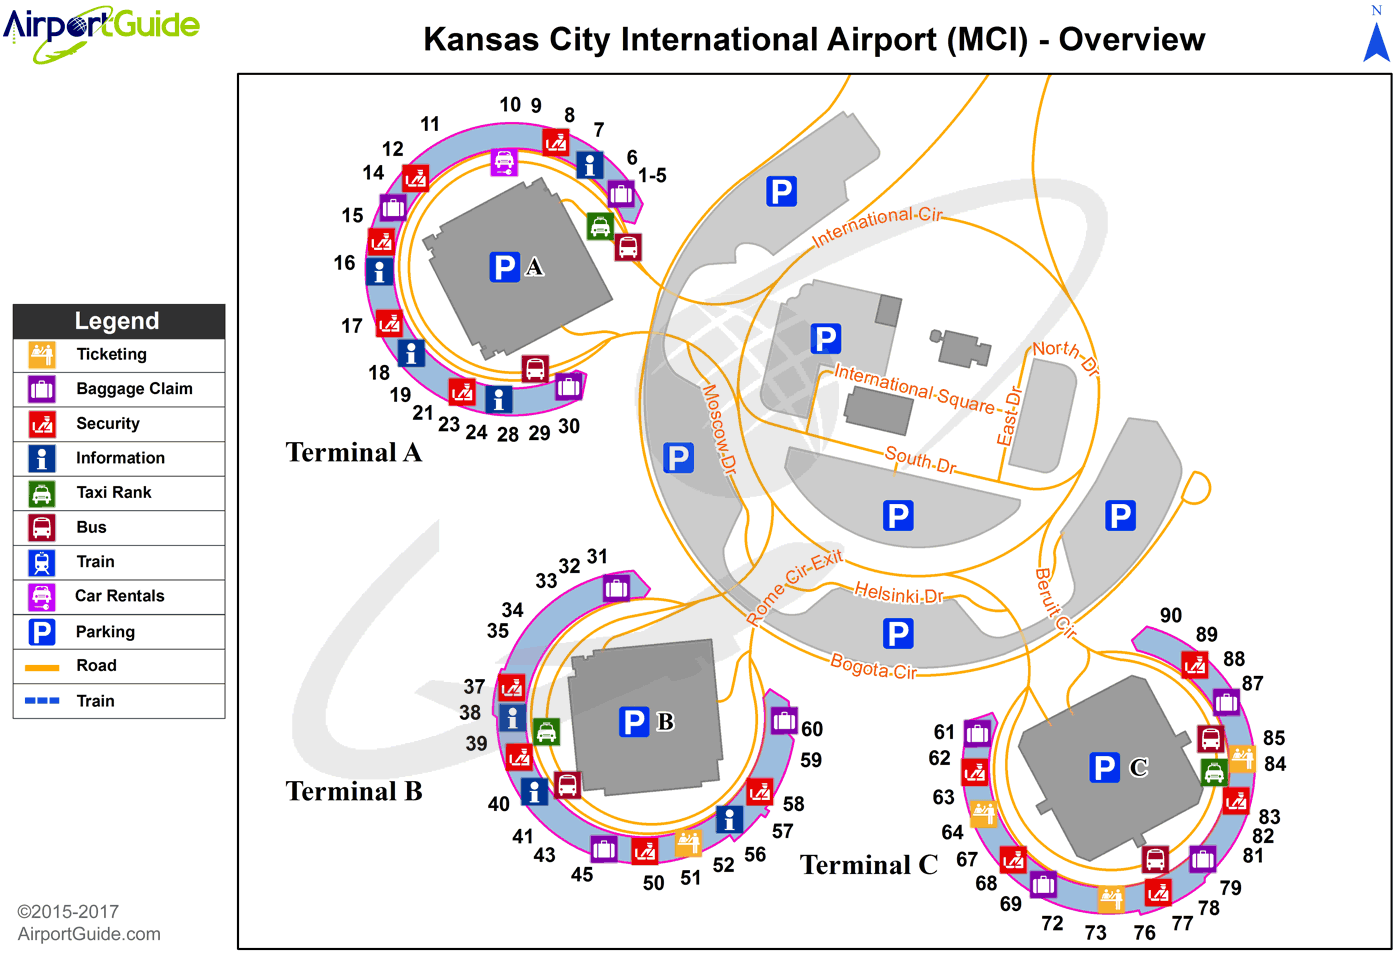 Kansas City - Kansas City International (MCI) Airport Terminal Map - Overview